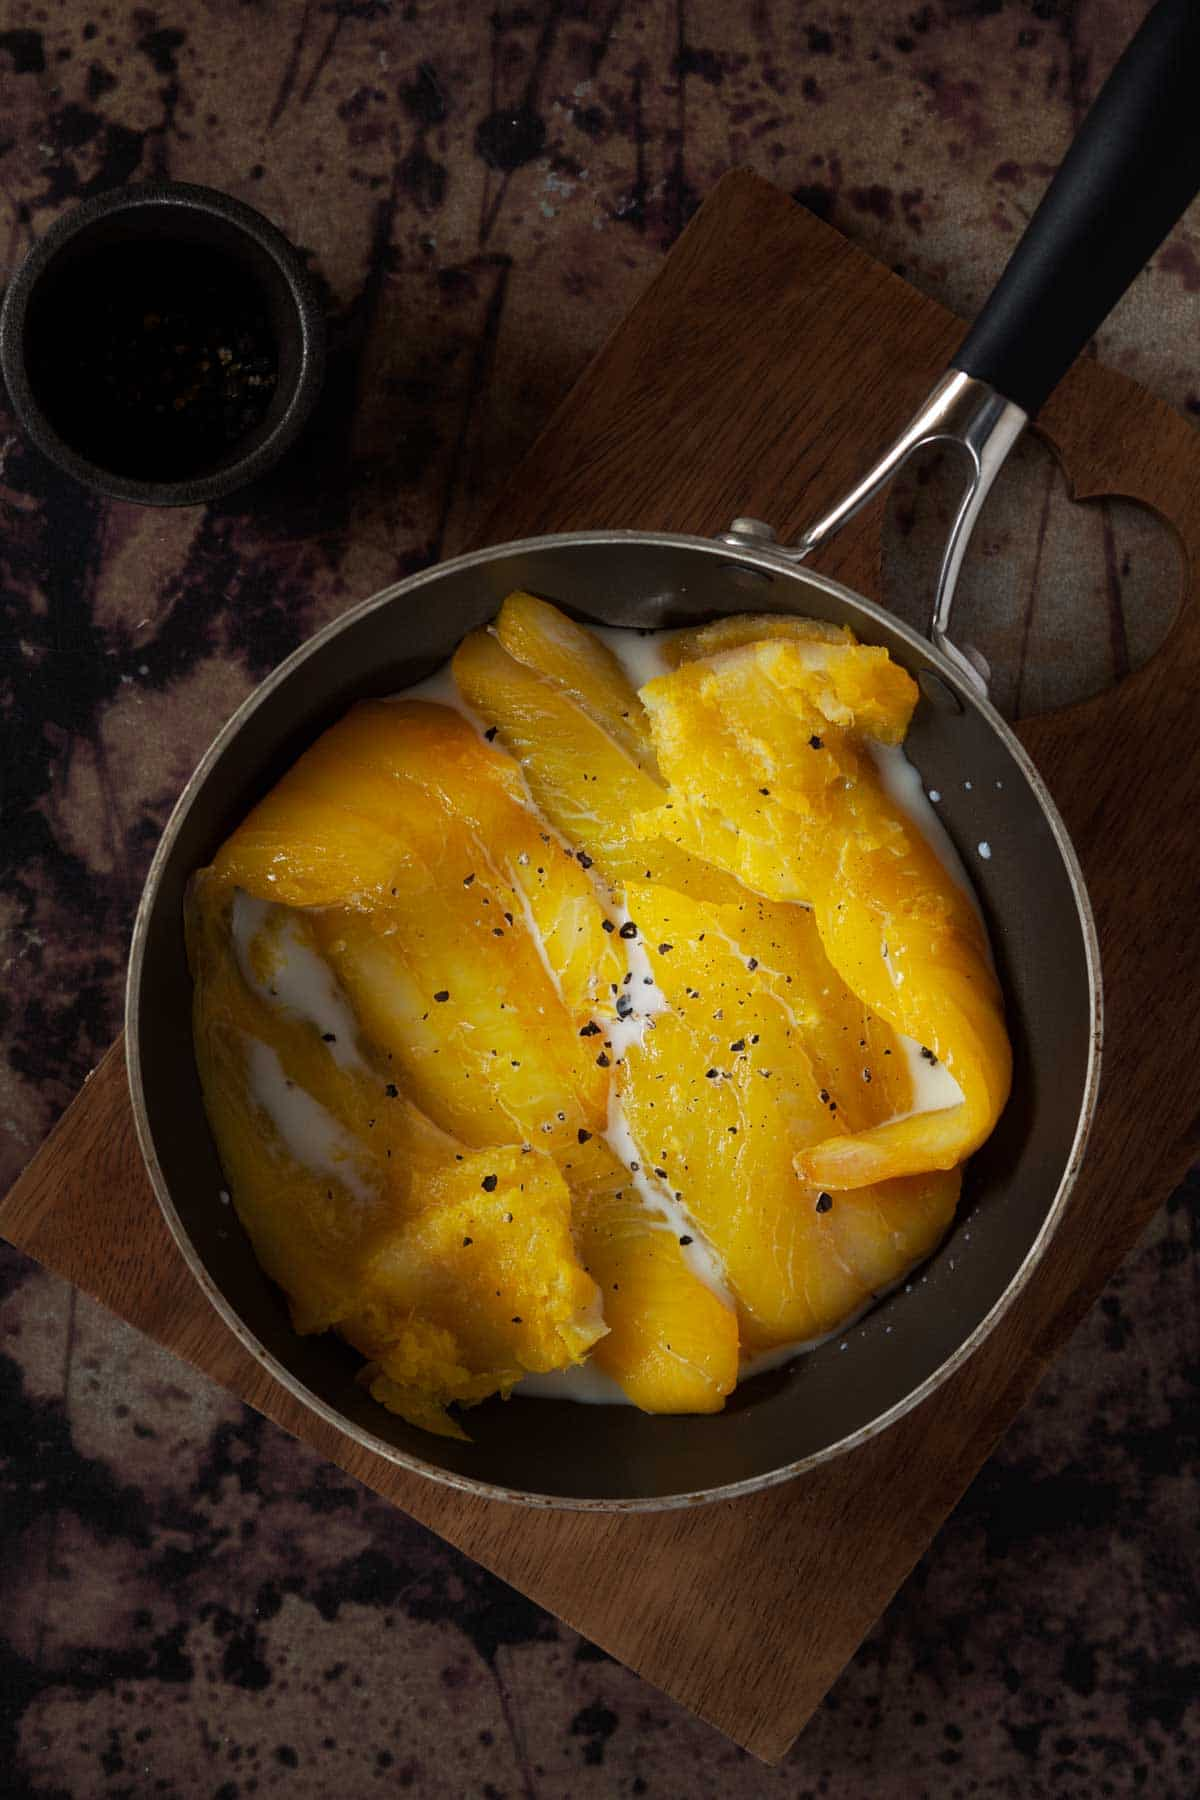 A cooking pan holding yellow dyed smoked haddock, milk and black pepper